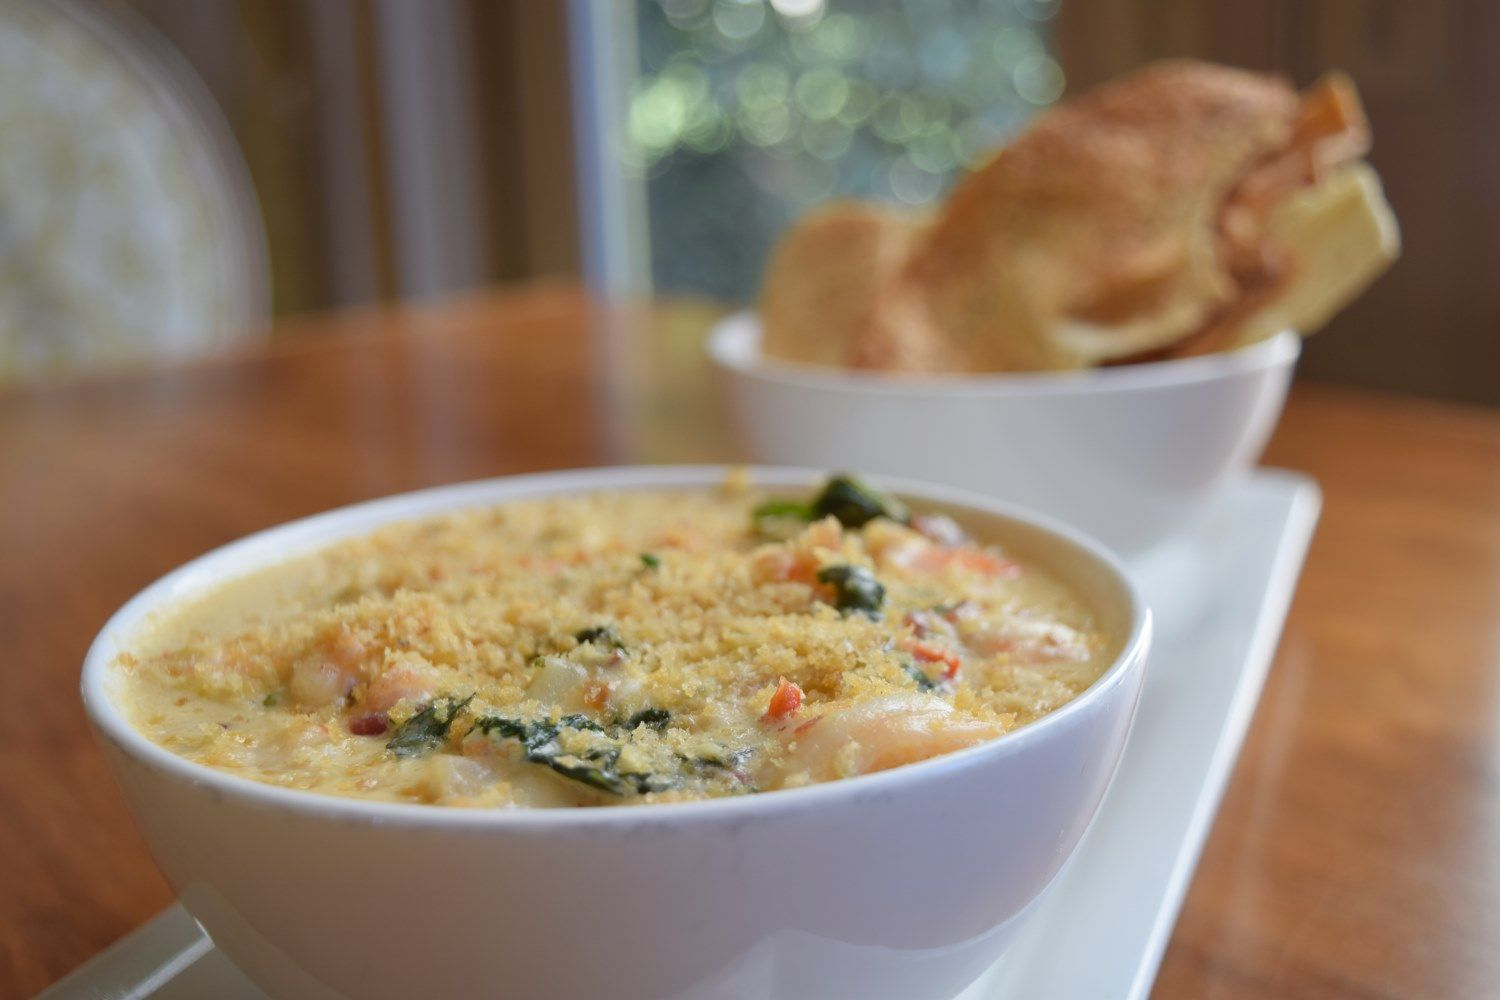 Shrimp Artichoke Bacon Dip With Baby Kale And Poppy Seed Crisps Print Works Bistro Greensboro Nc Bacon Dip Bistro Restaurant Food